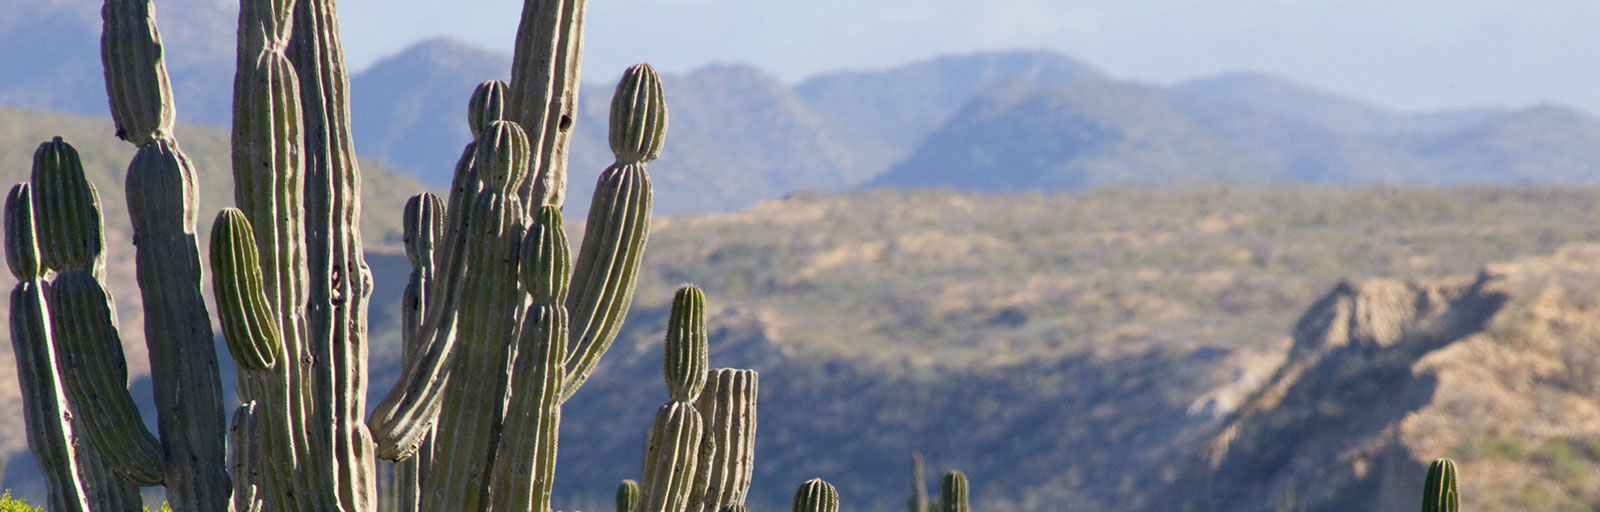 Cactus and Mountains in the Baja Desert